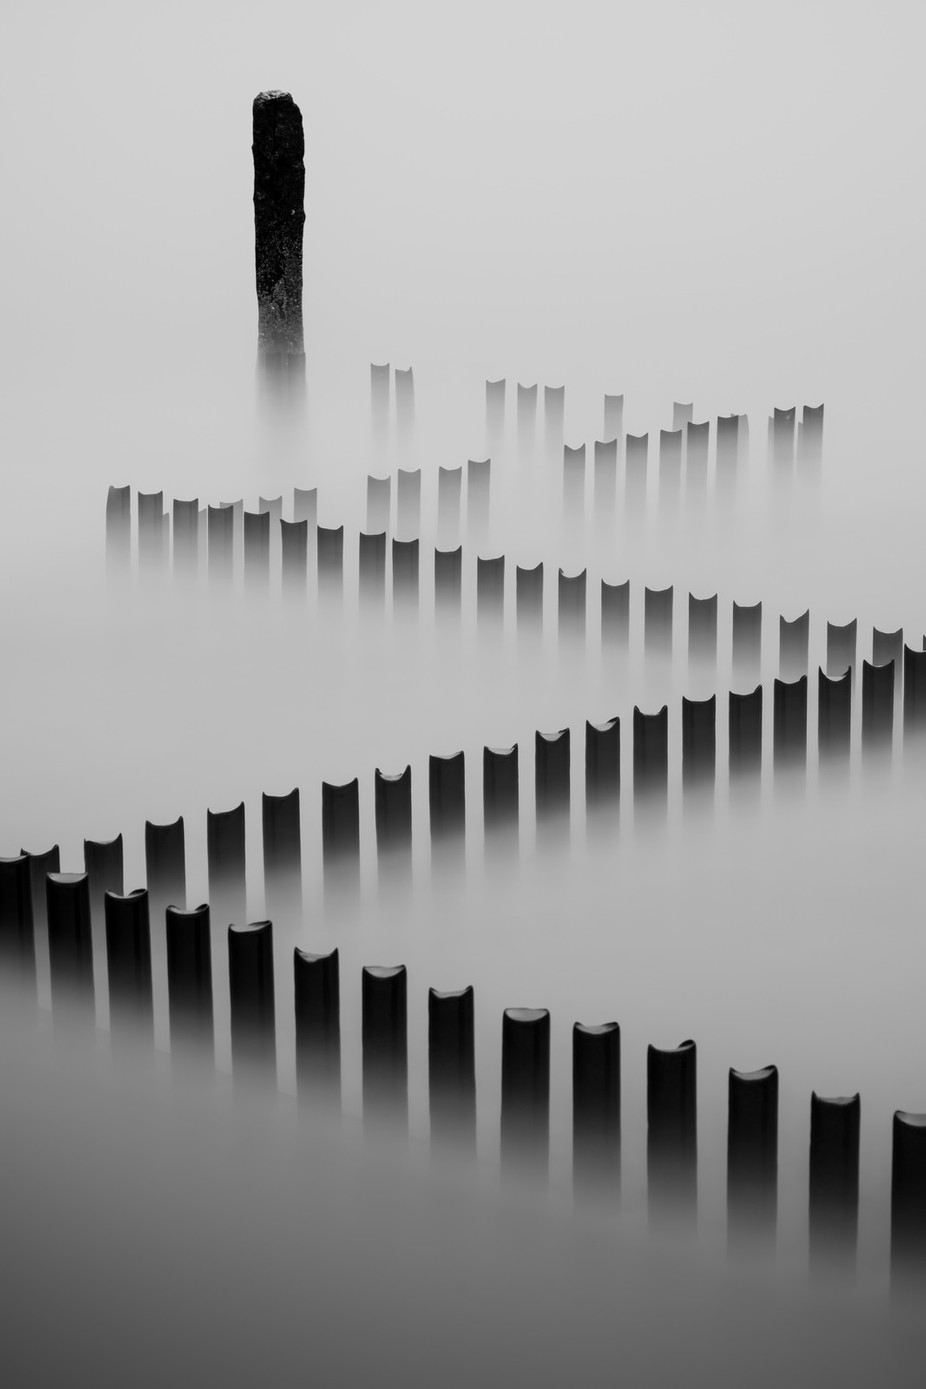 Caister on Sea 30/01/2016 by mushroomgodmat - Composing with Diagonals Photo Contest